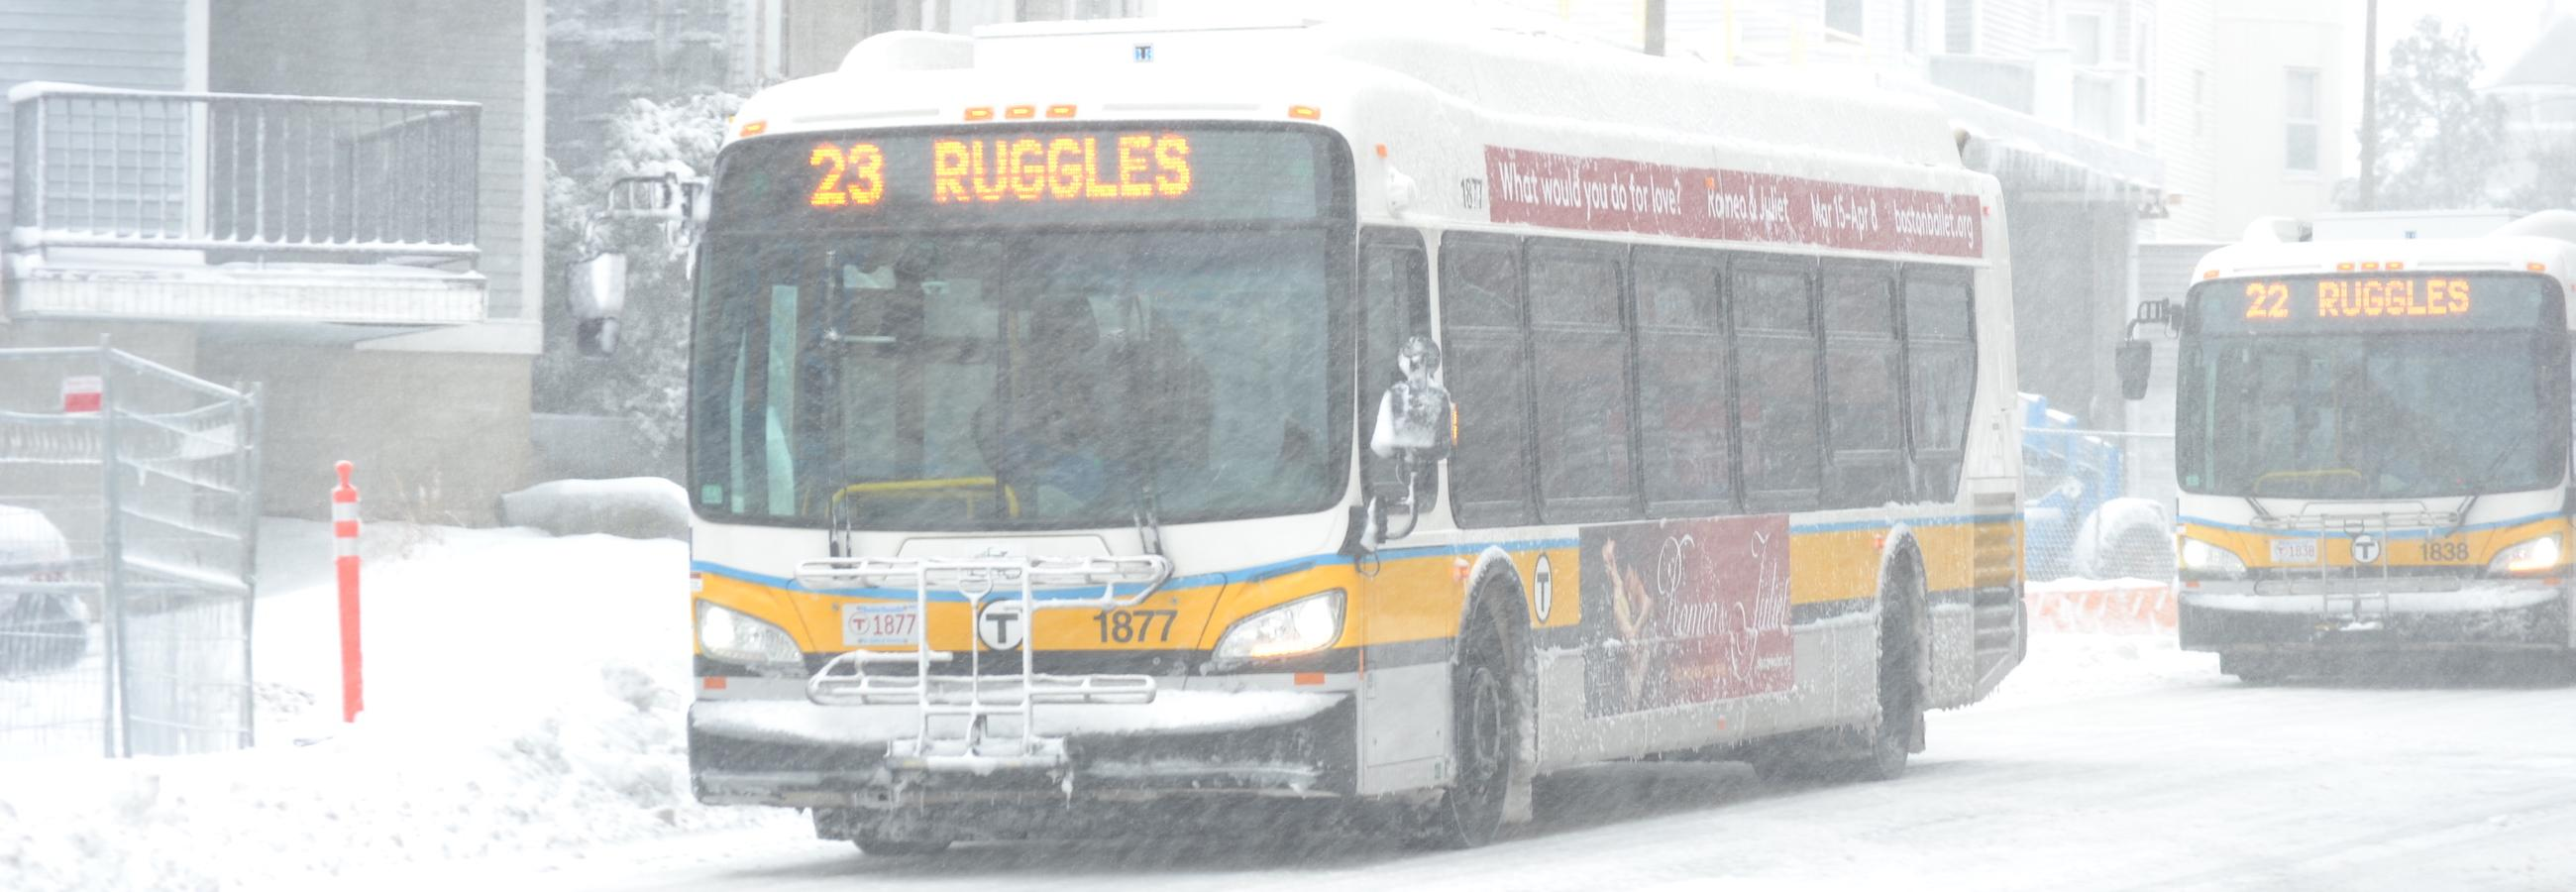 23 bus to ruggles in snow